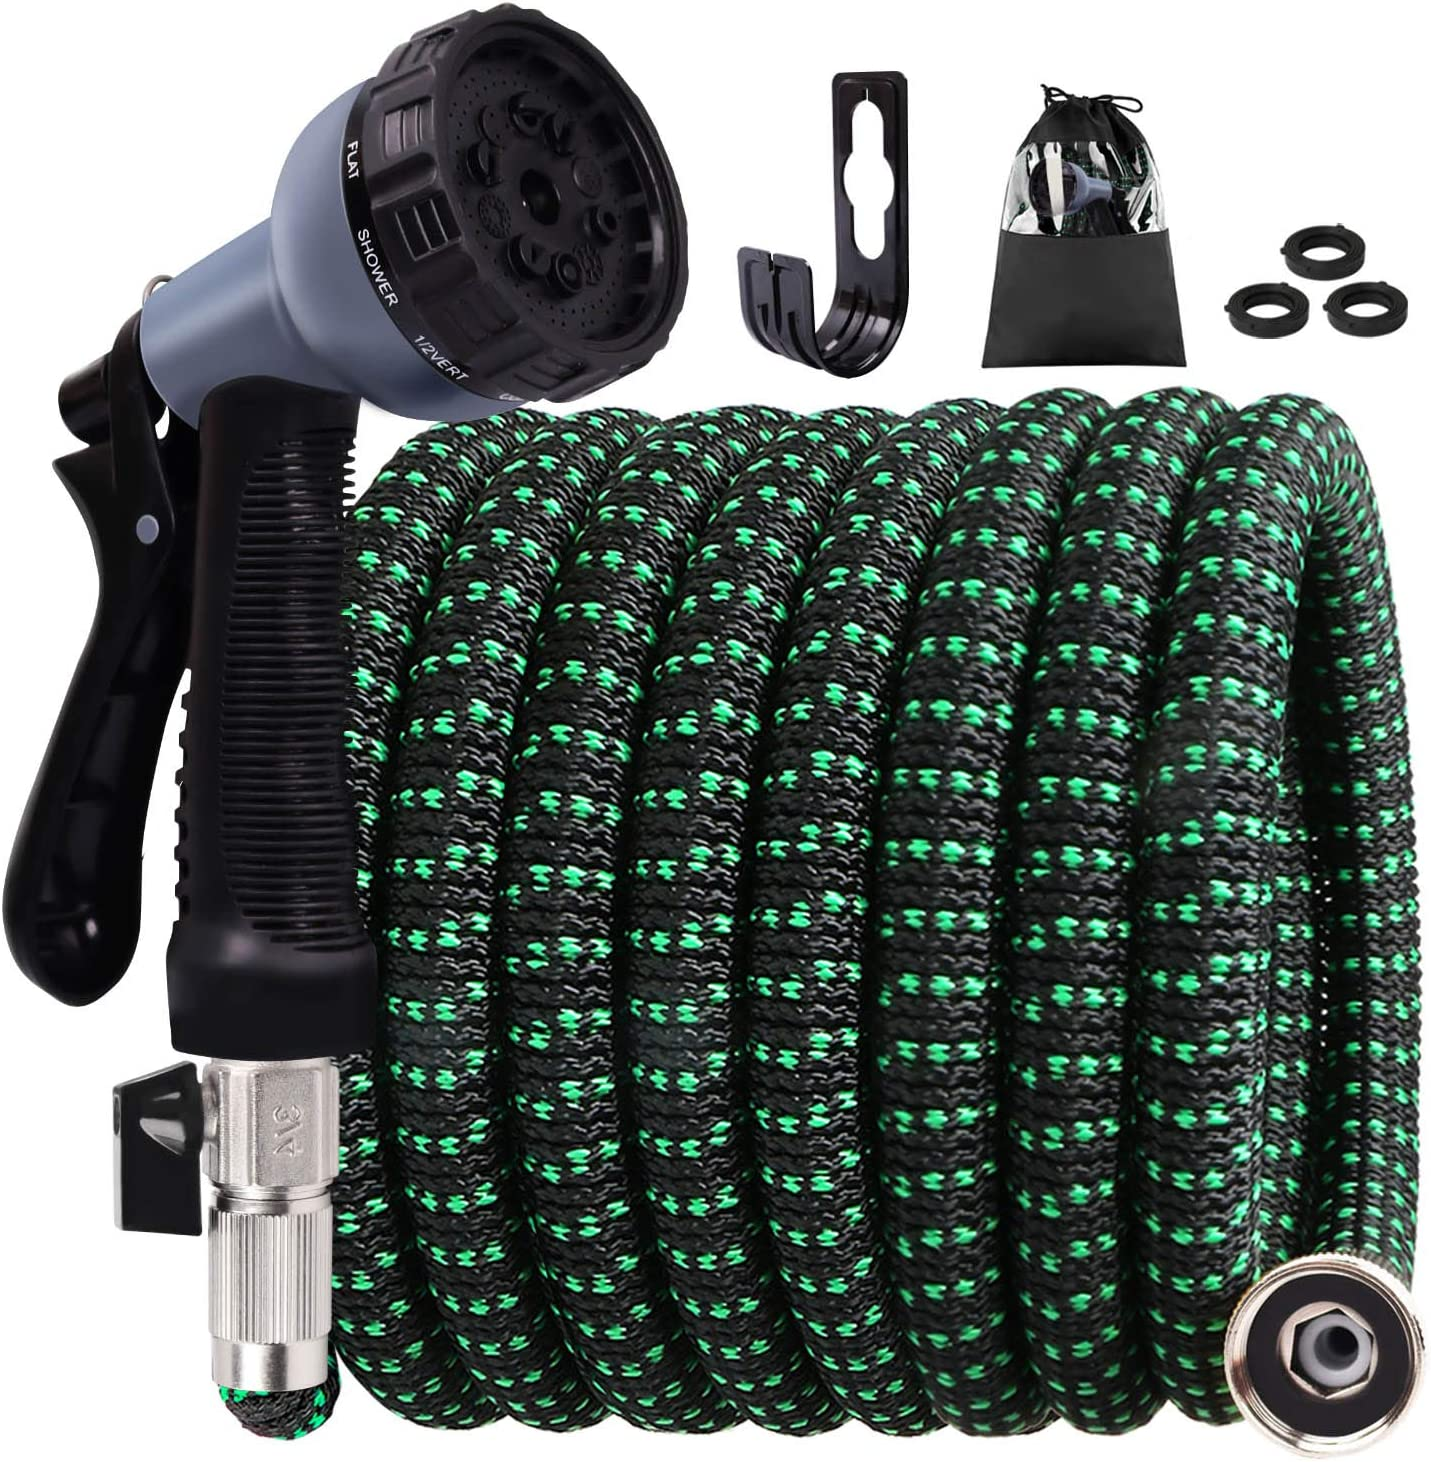 """Expandable Garden Hose, 30ft Water Hose with Multilayer Latex Core, 3/4"""" Nickel-Plated Brass Fittings, Strength Stretch 3750D Fabric,Flexible Hose with 10 Functions Nozzle9(Black Green)"""